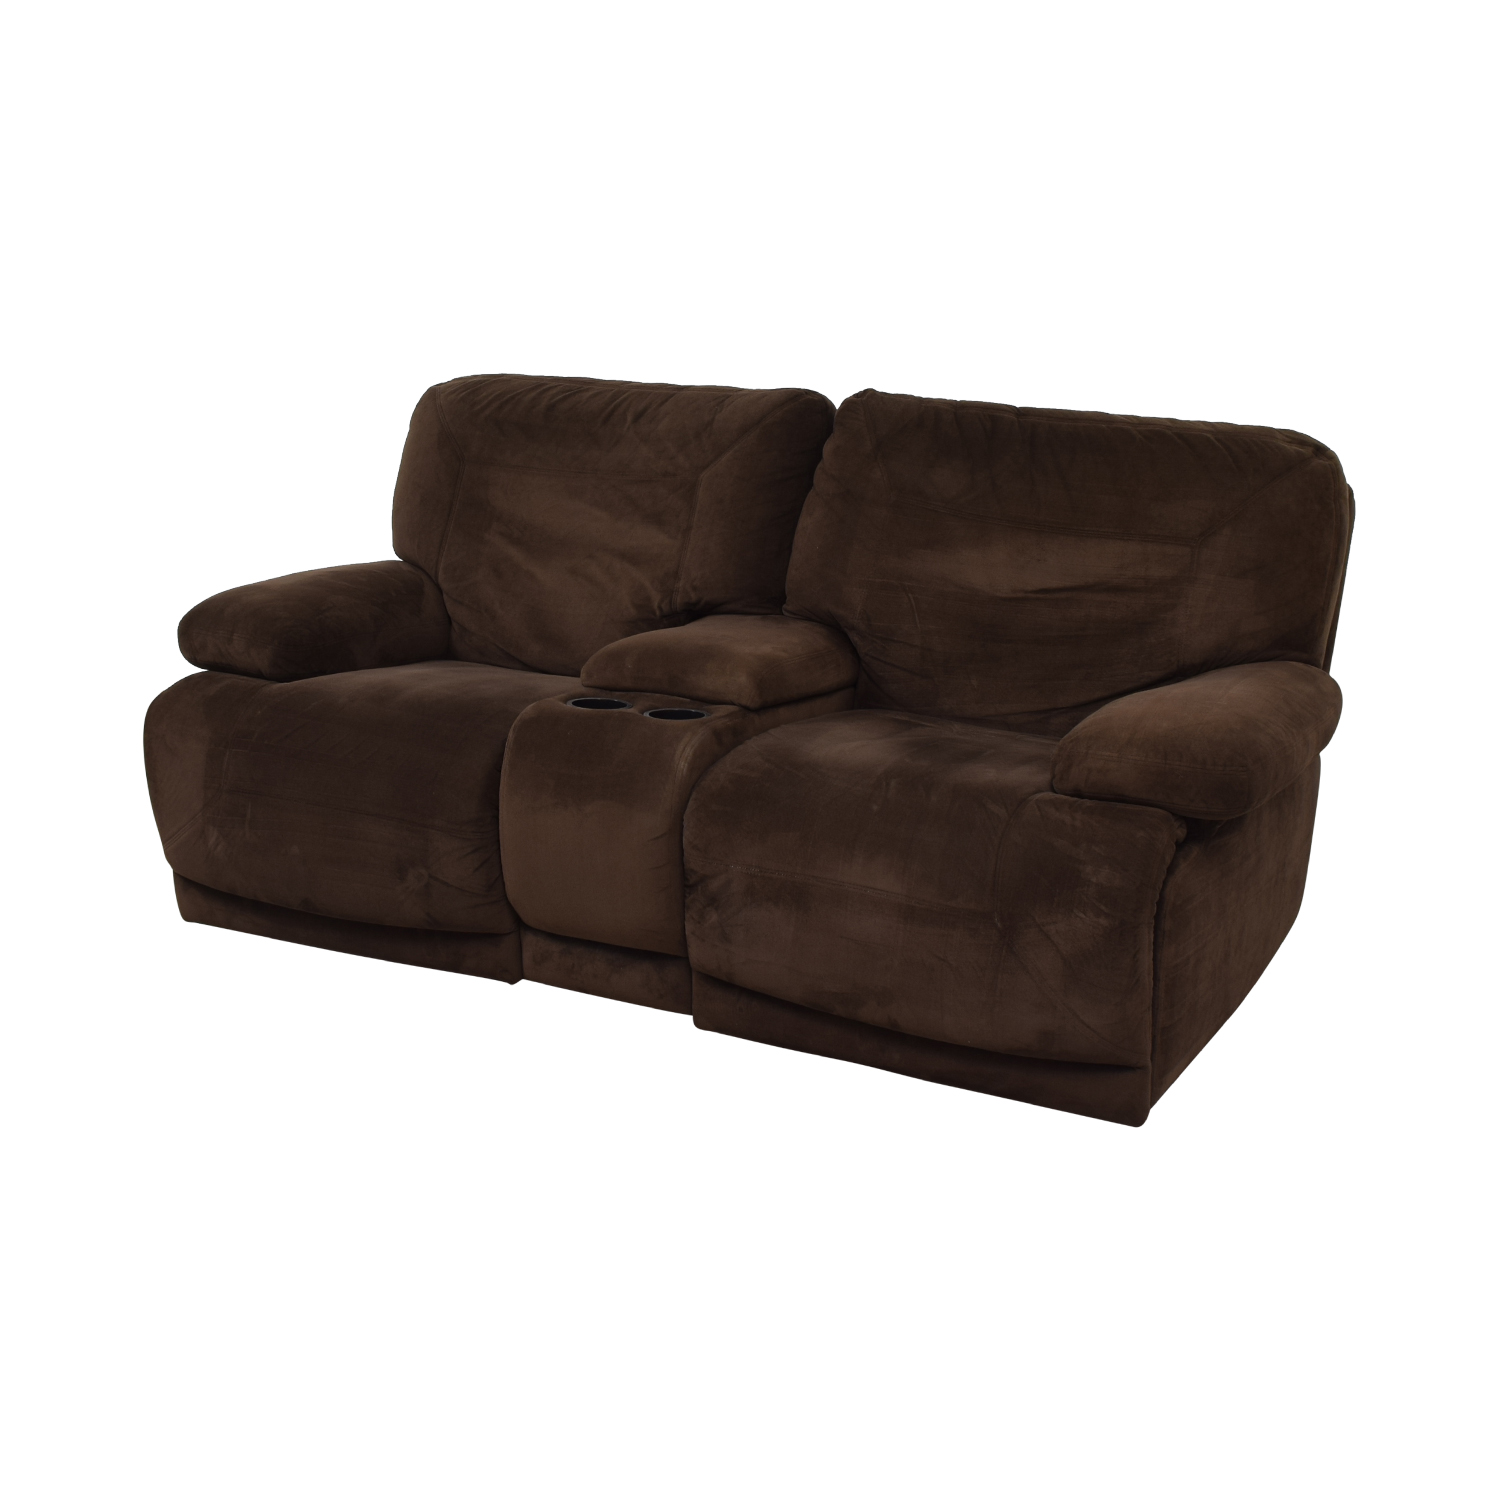 Macy's Macy's Brown Reclining Loveseat coupon